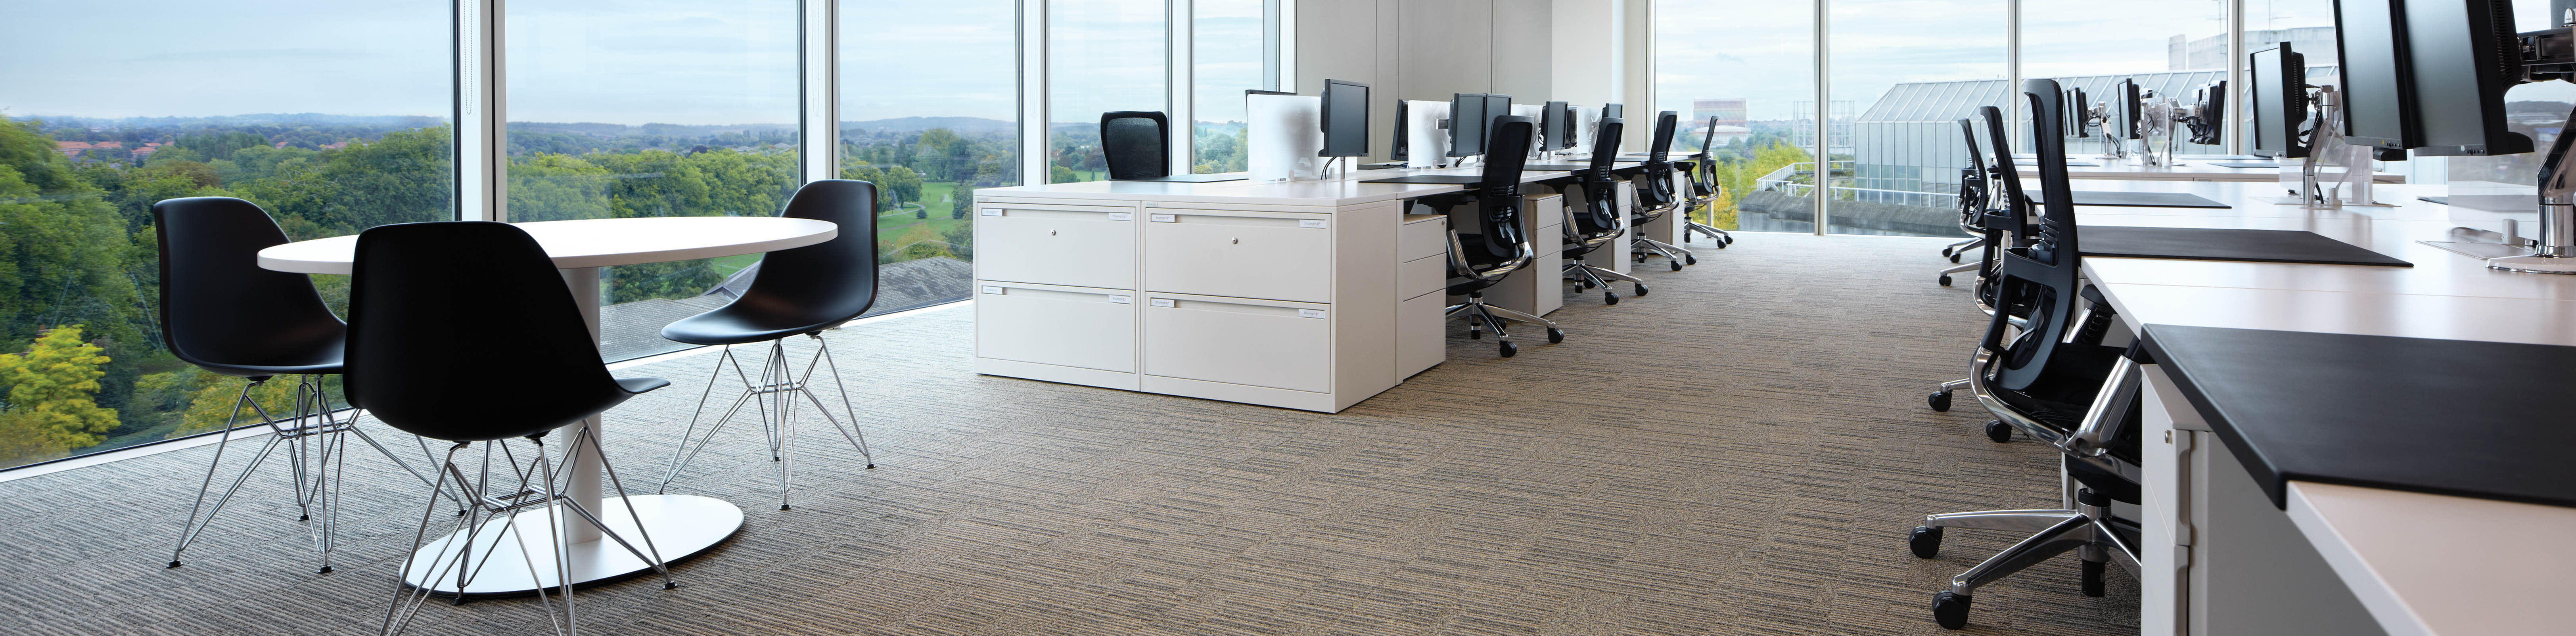 Barkham Office Furniture Hire Services - Office chair hire